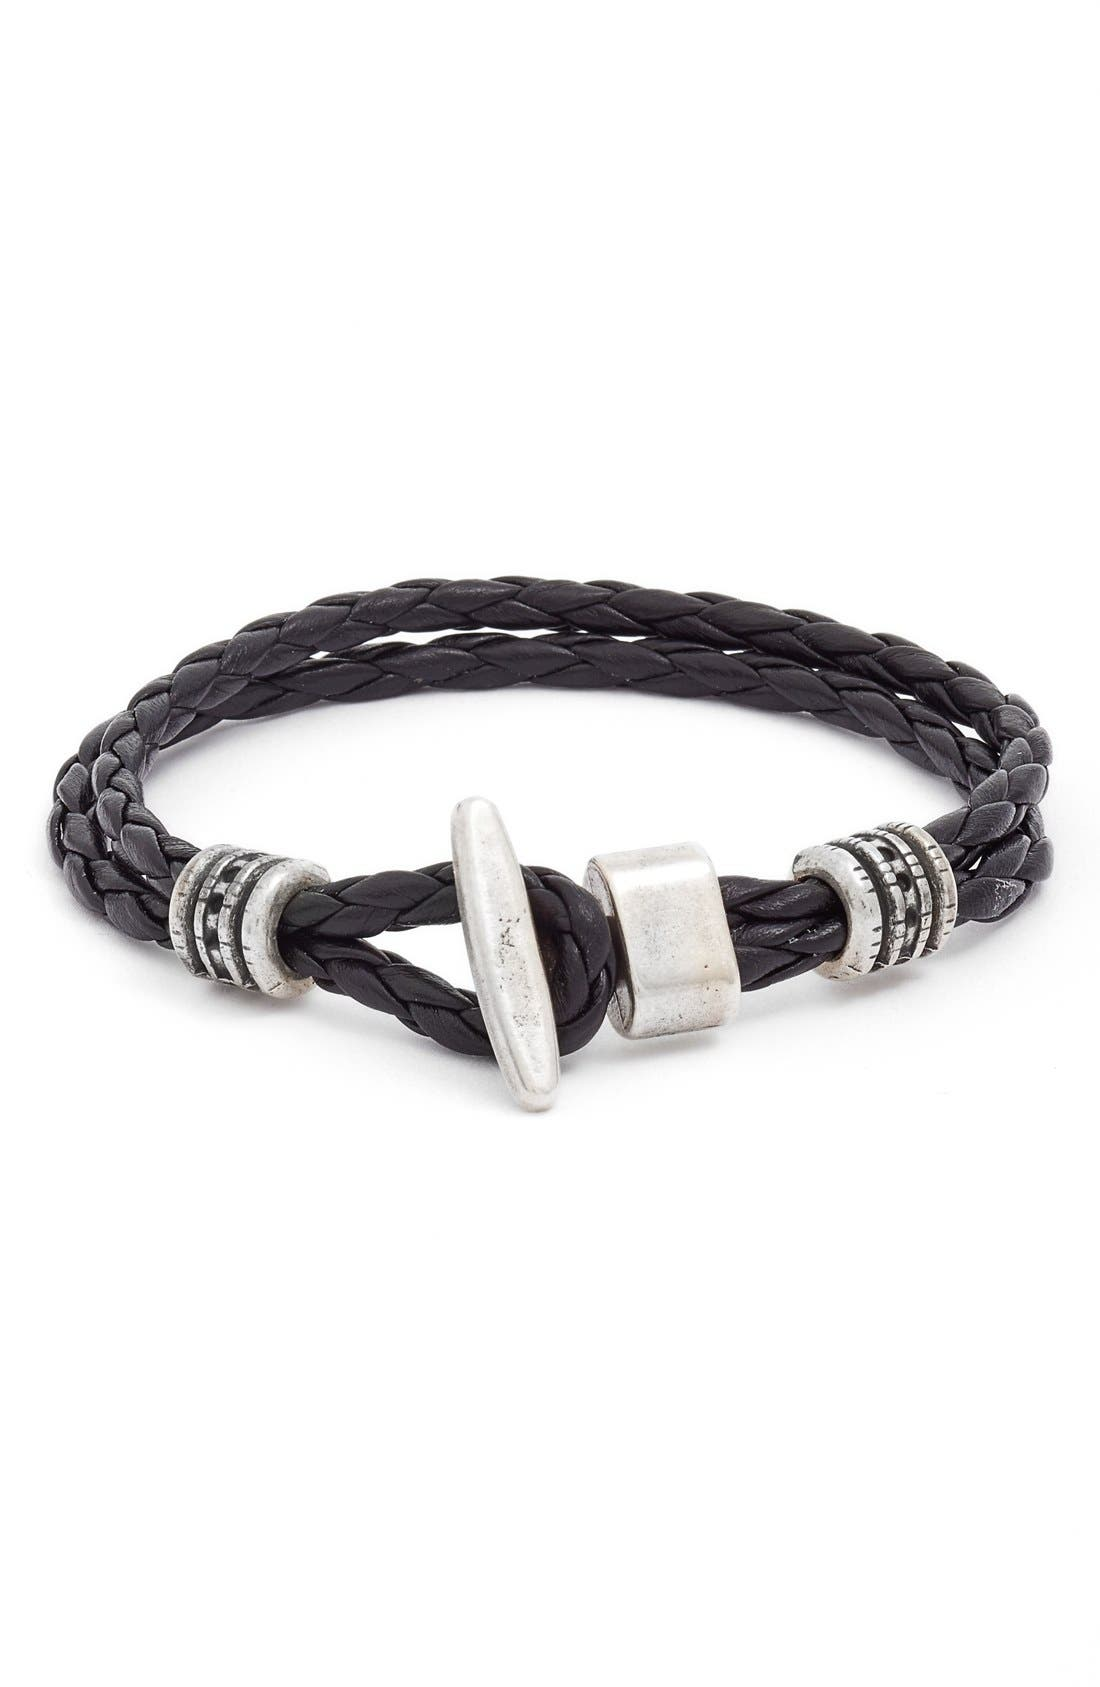 Braided Leather Bracelet,                             Main thumbnail 1, color,                             Black